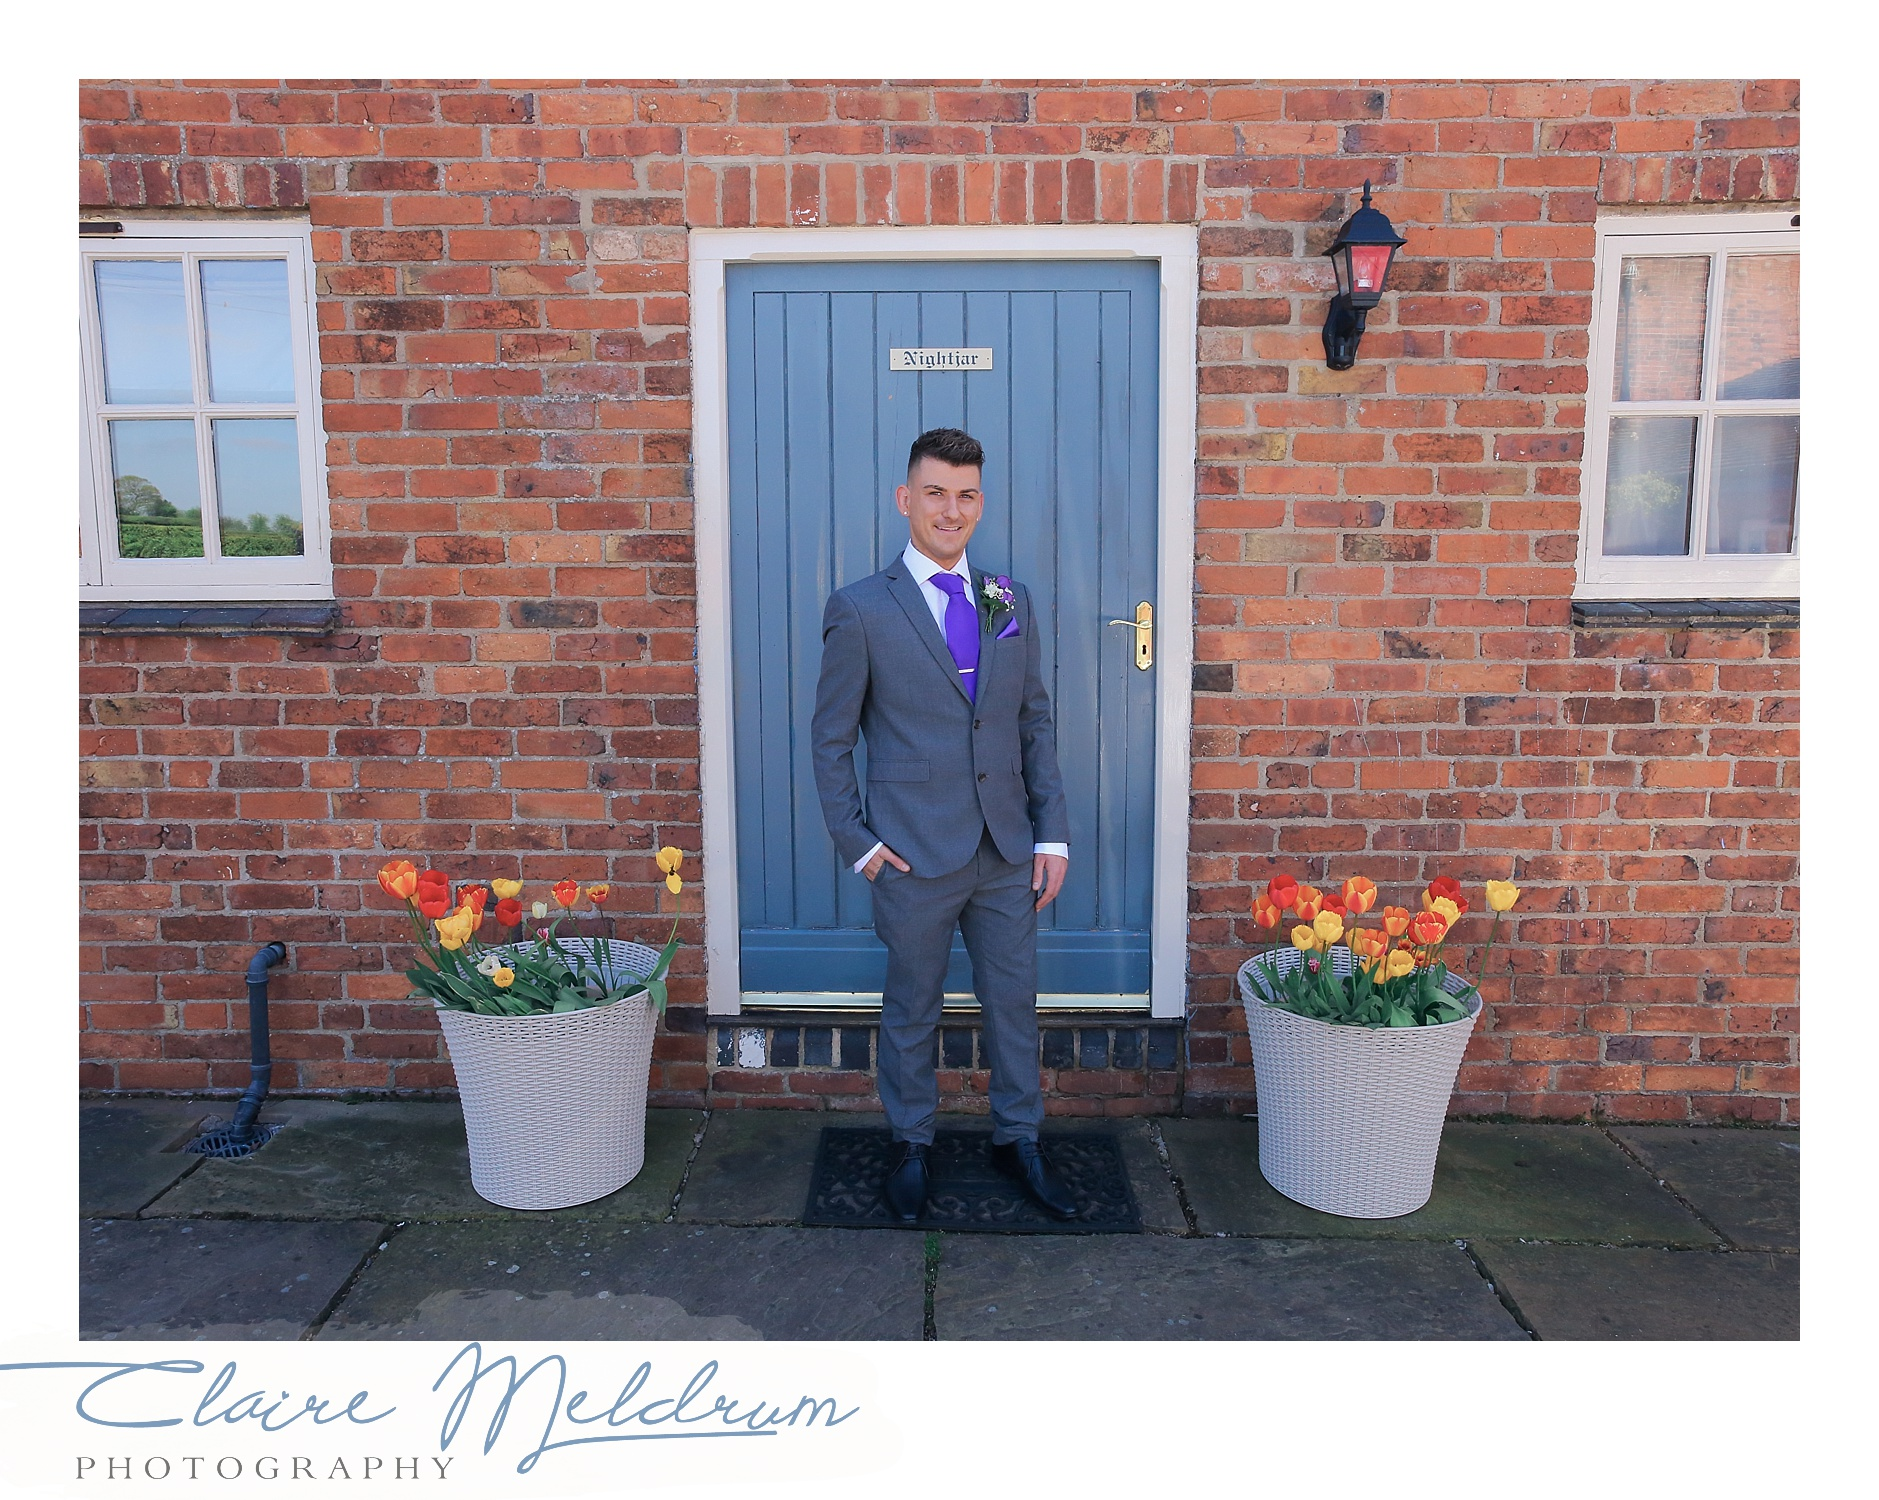 Two Grooms, Claire Meldrum Photography